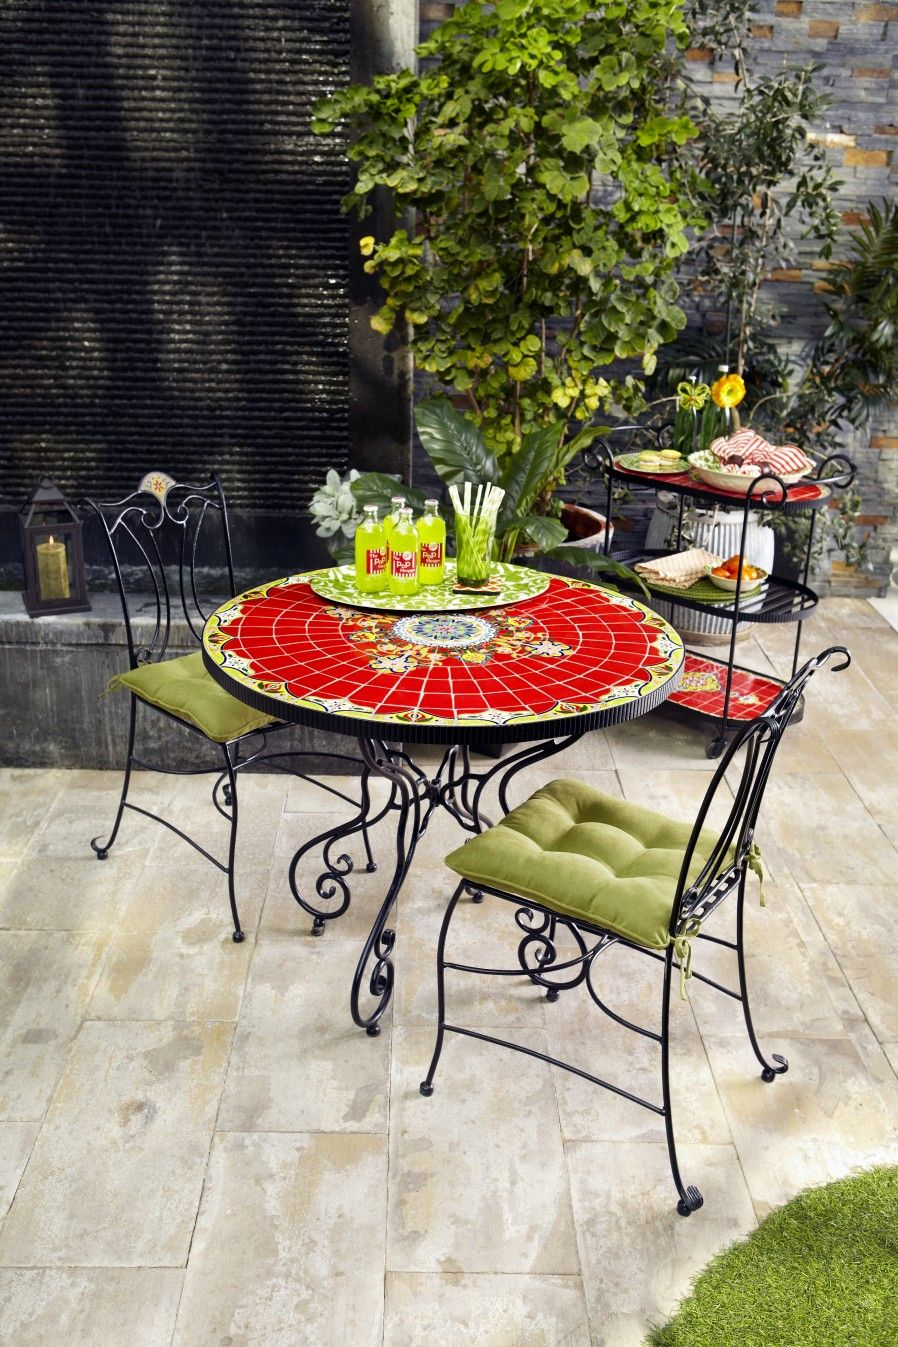 Give Your Patio A Fresh Pop Of Color With Our Rania Table